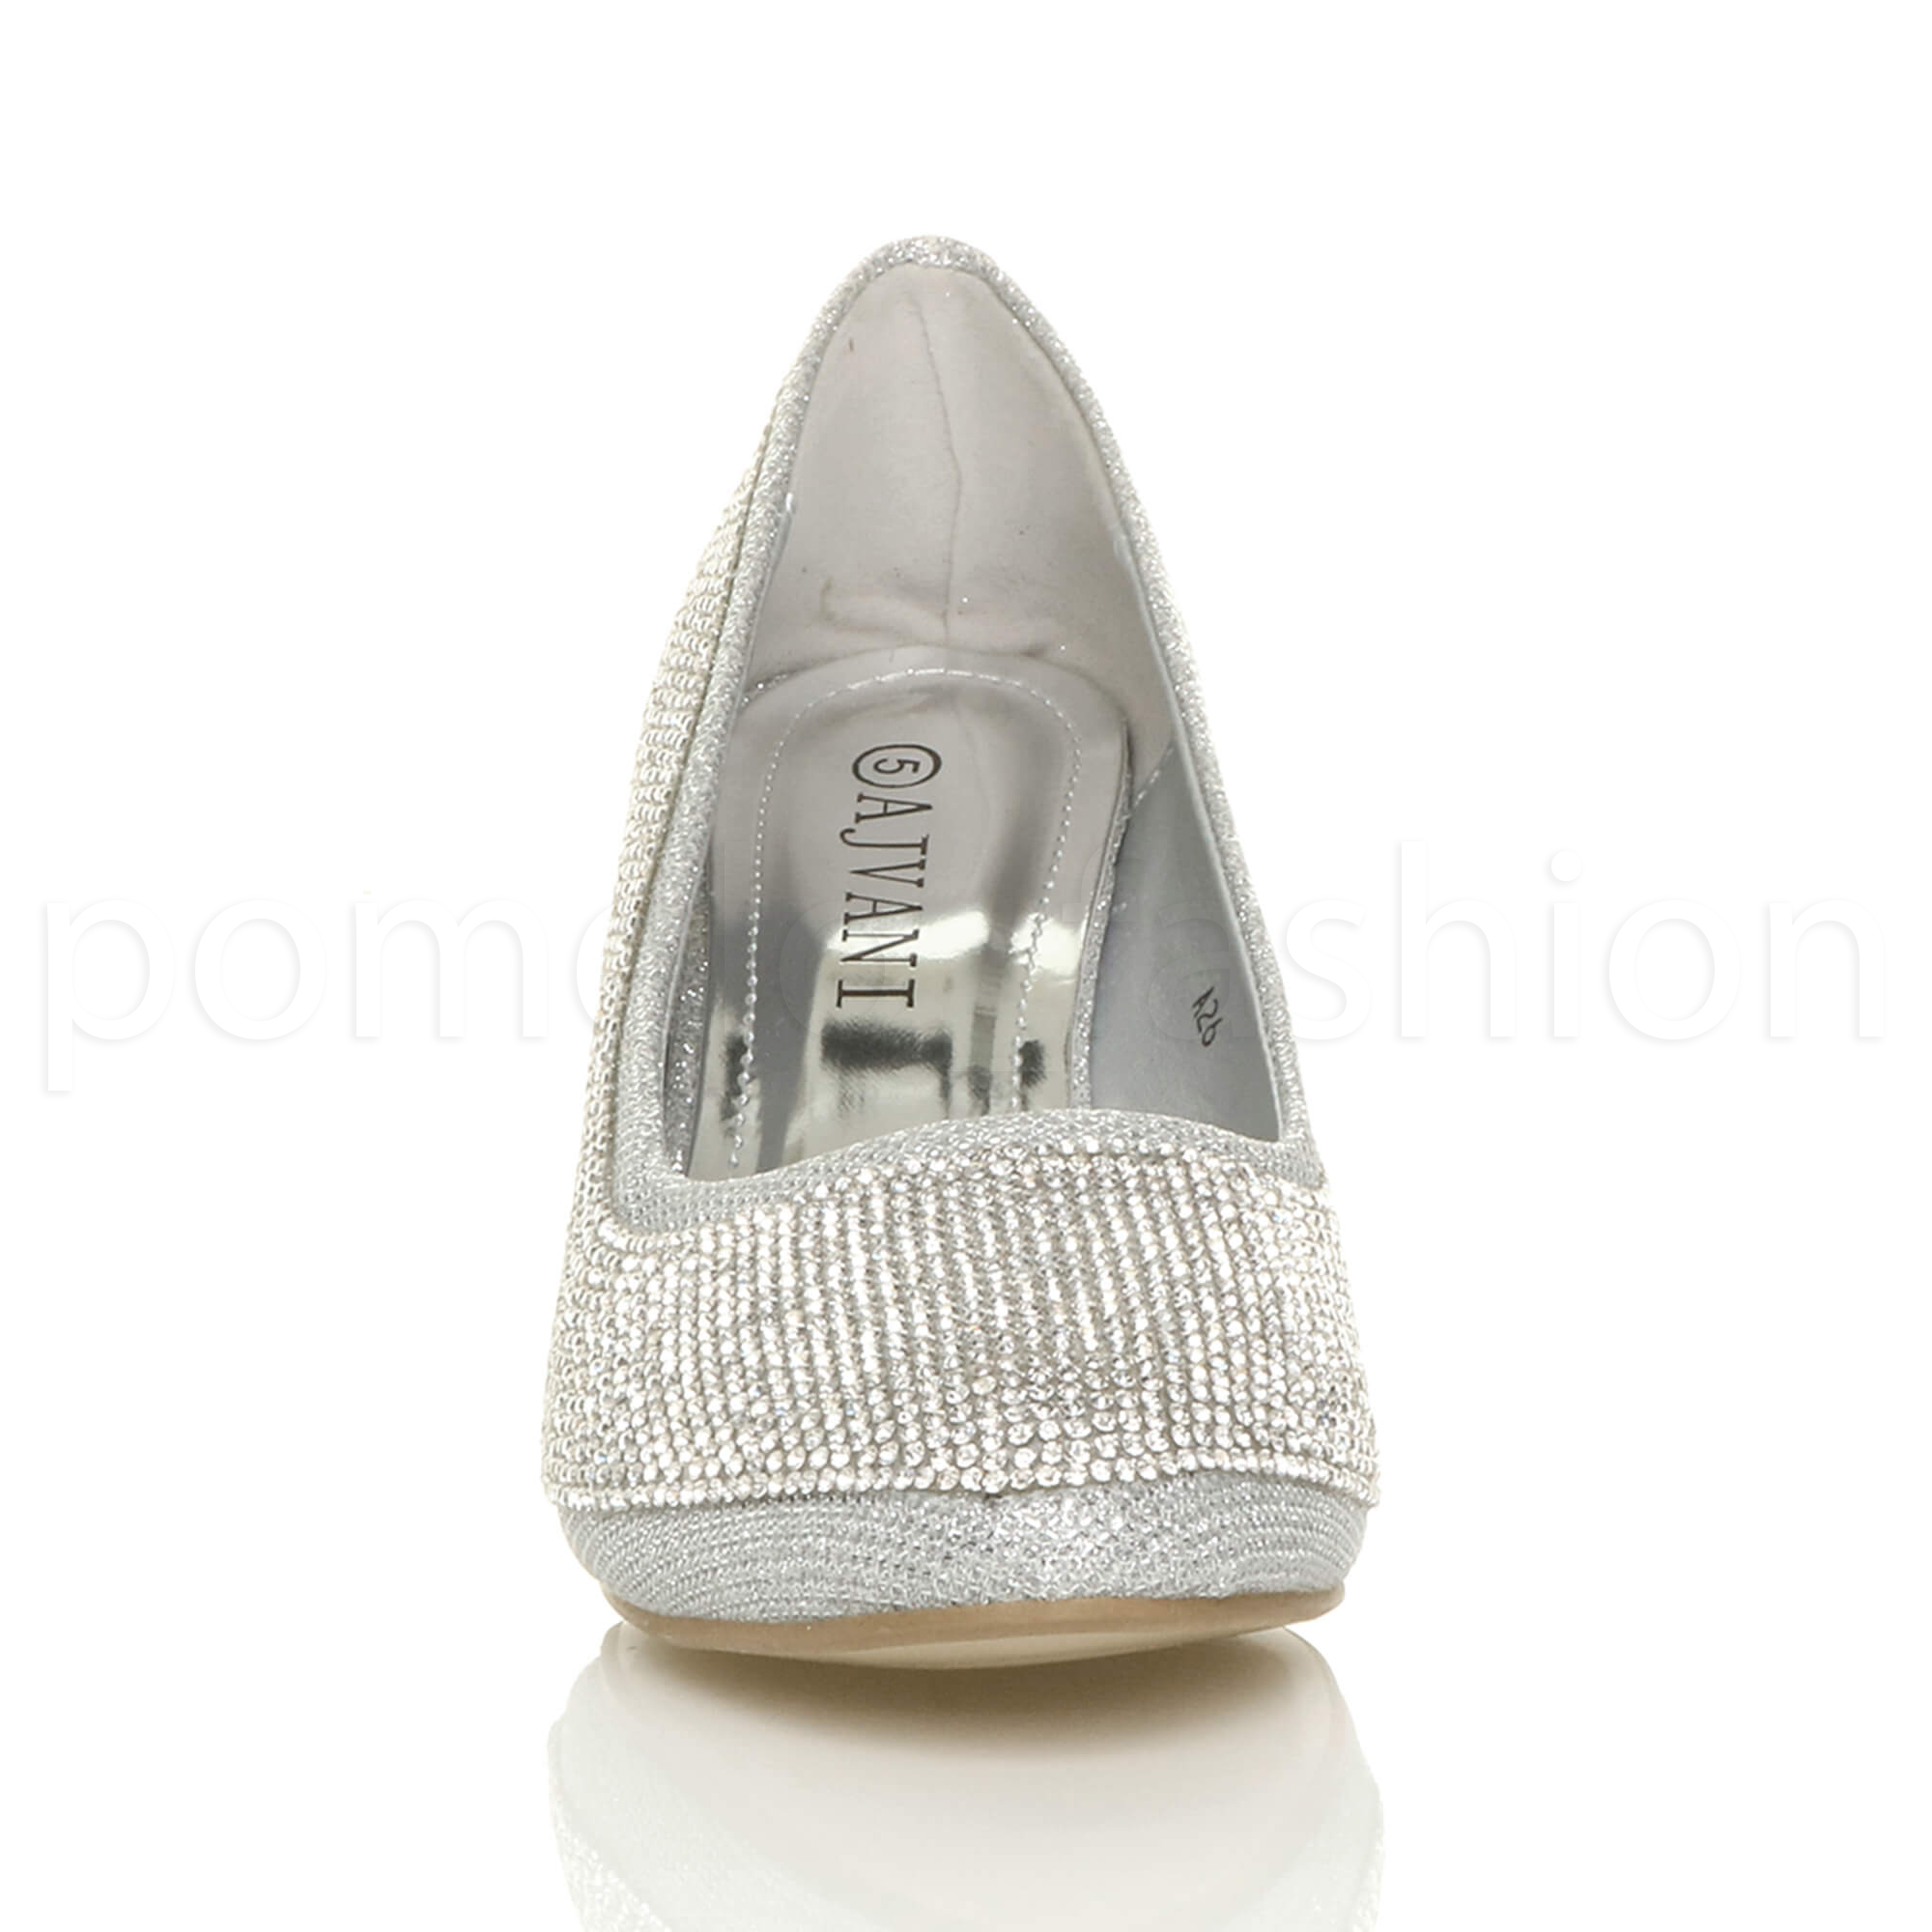 WOMENS LOW HEEL WEDGE DIAMANTE EVENING WEDDING PROM BRIDAL COURT SHOES SIZE